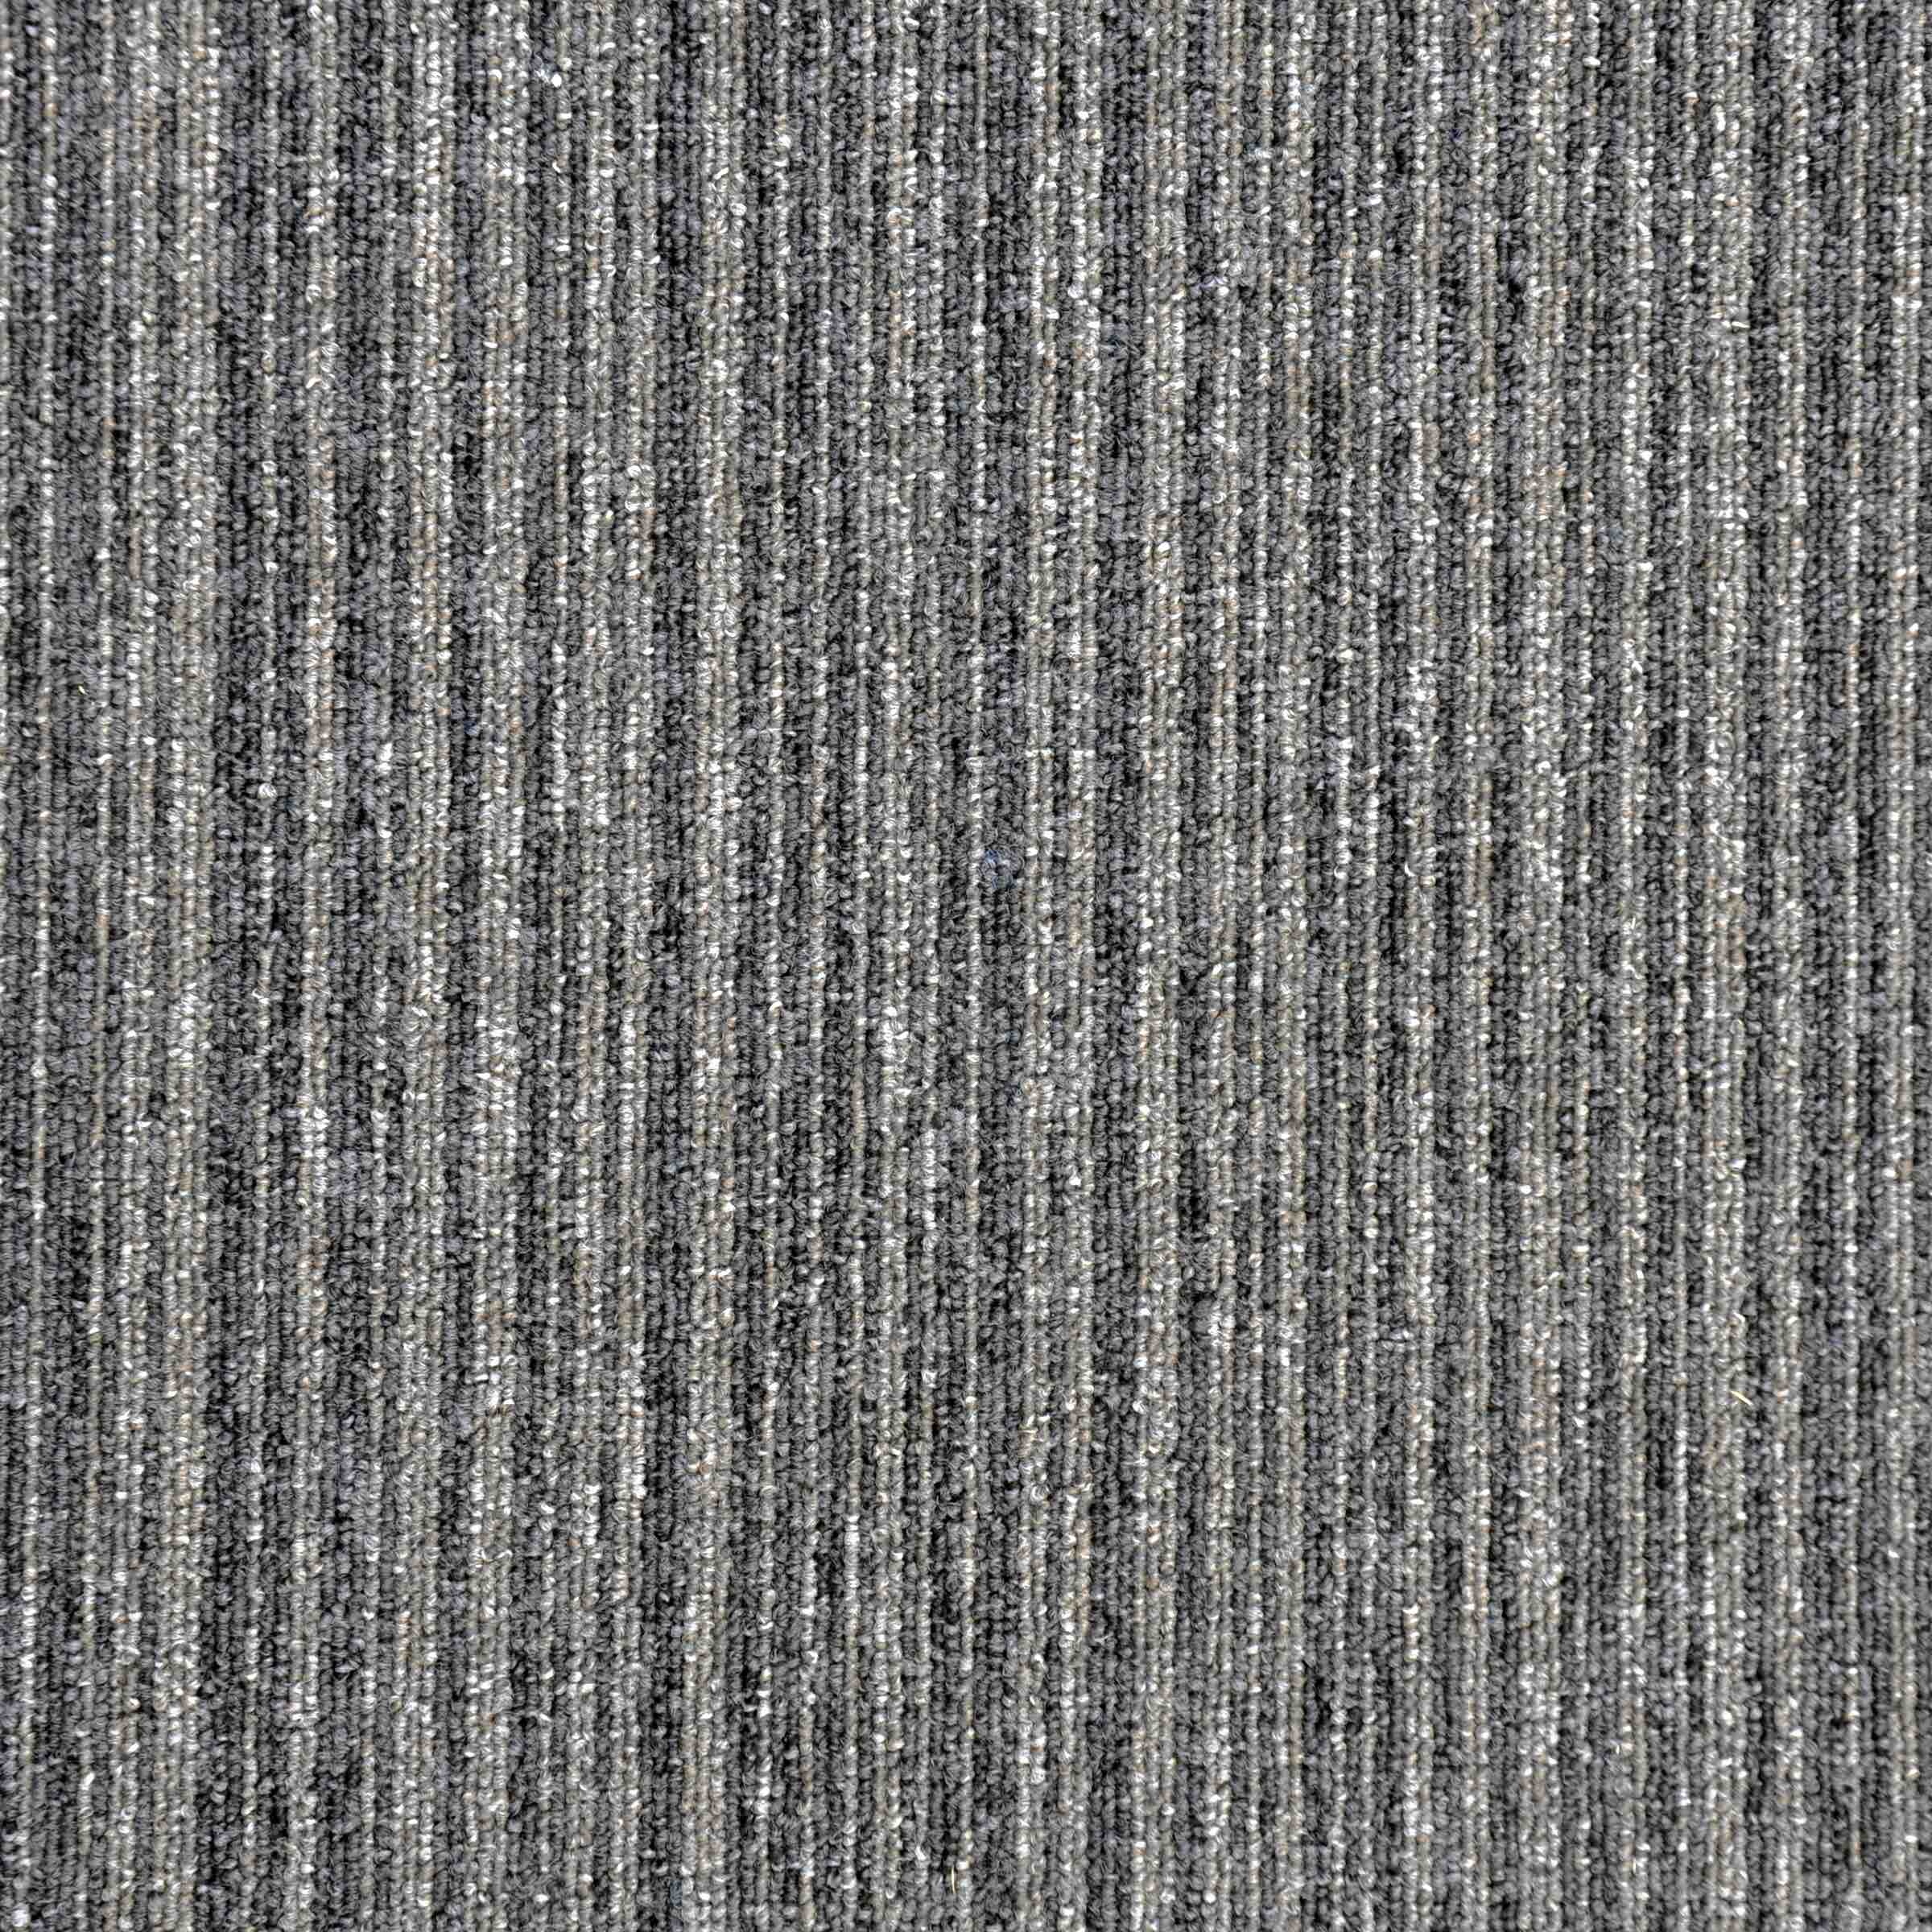 Vital | 868302 | Paragon Carpet Tiles | Commercial Carpet Tiles